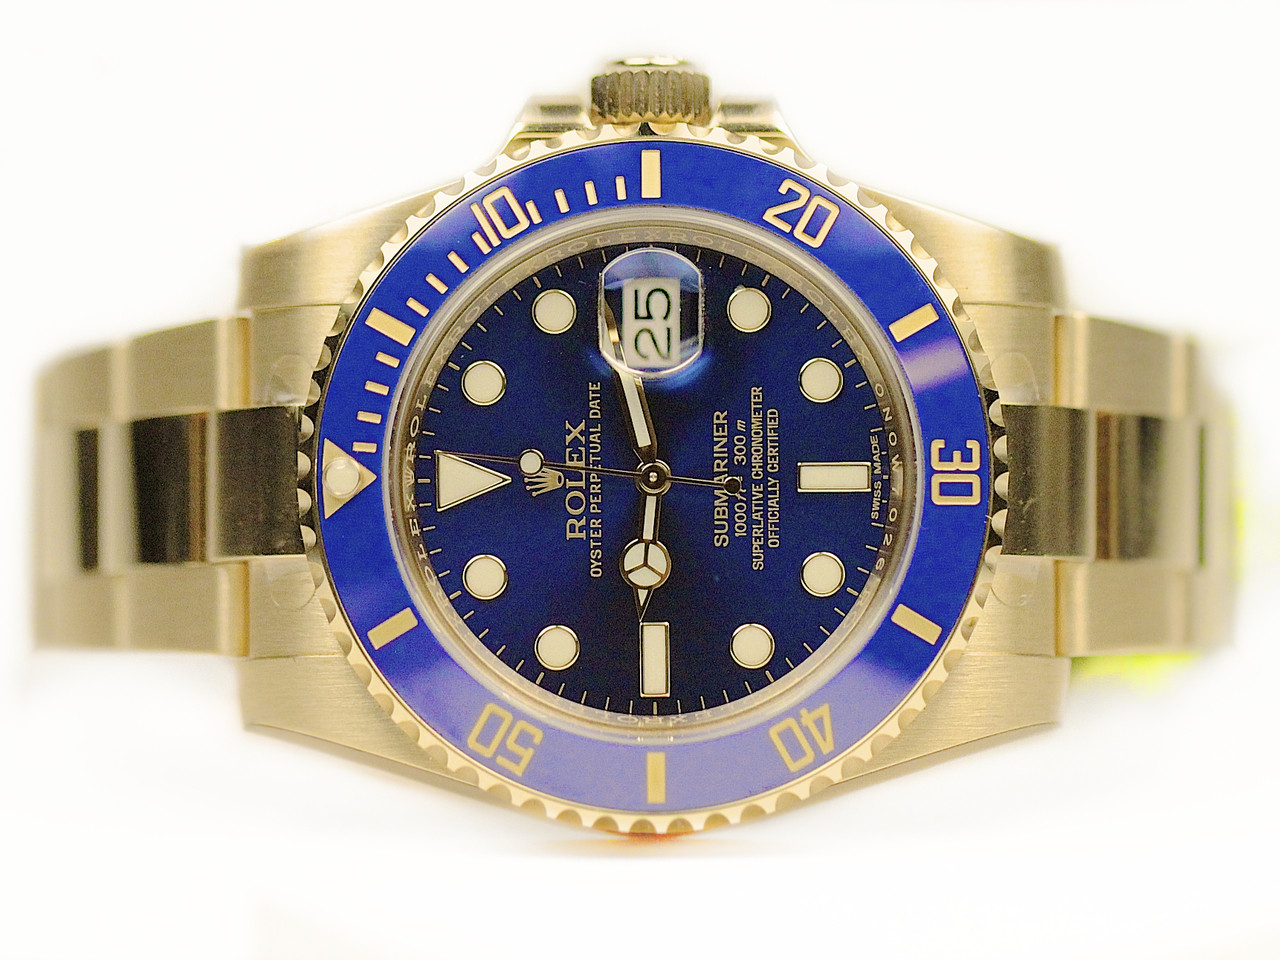 Rolex Watch Blue 18ct Yellow Gold Submariner 116618lb New For Sale